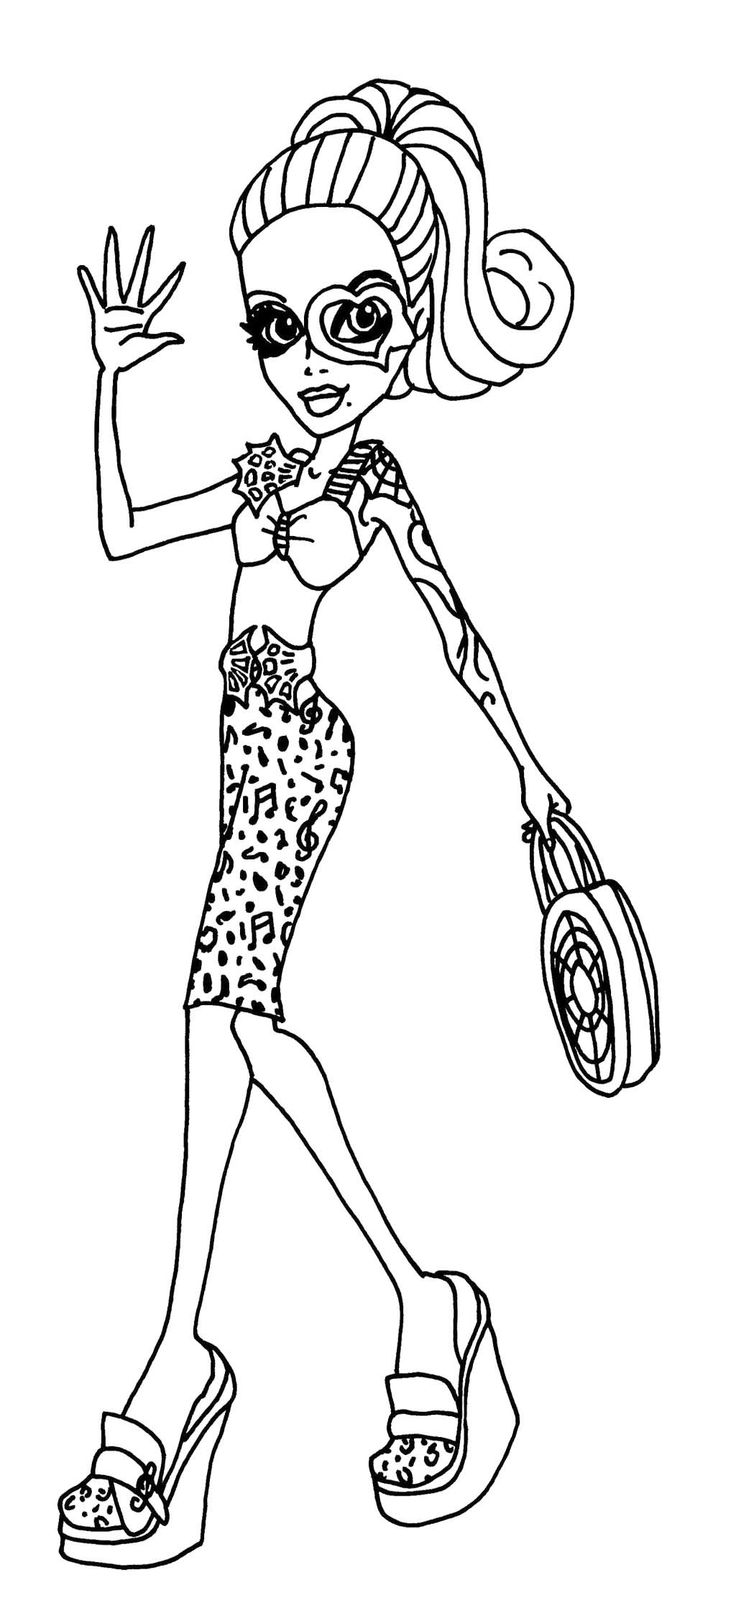 Monster high coloring pages webarella dress ~ 229 best images about Monster High Coloring Page on ...